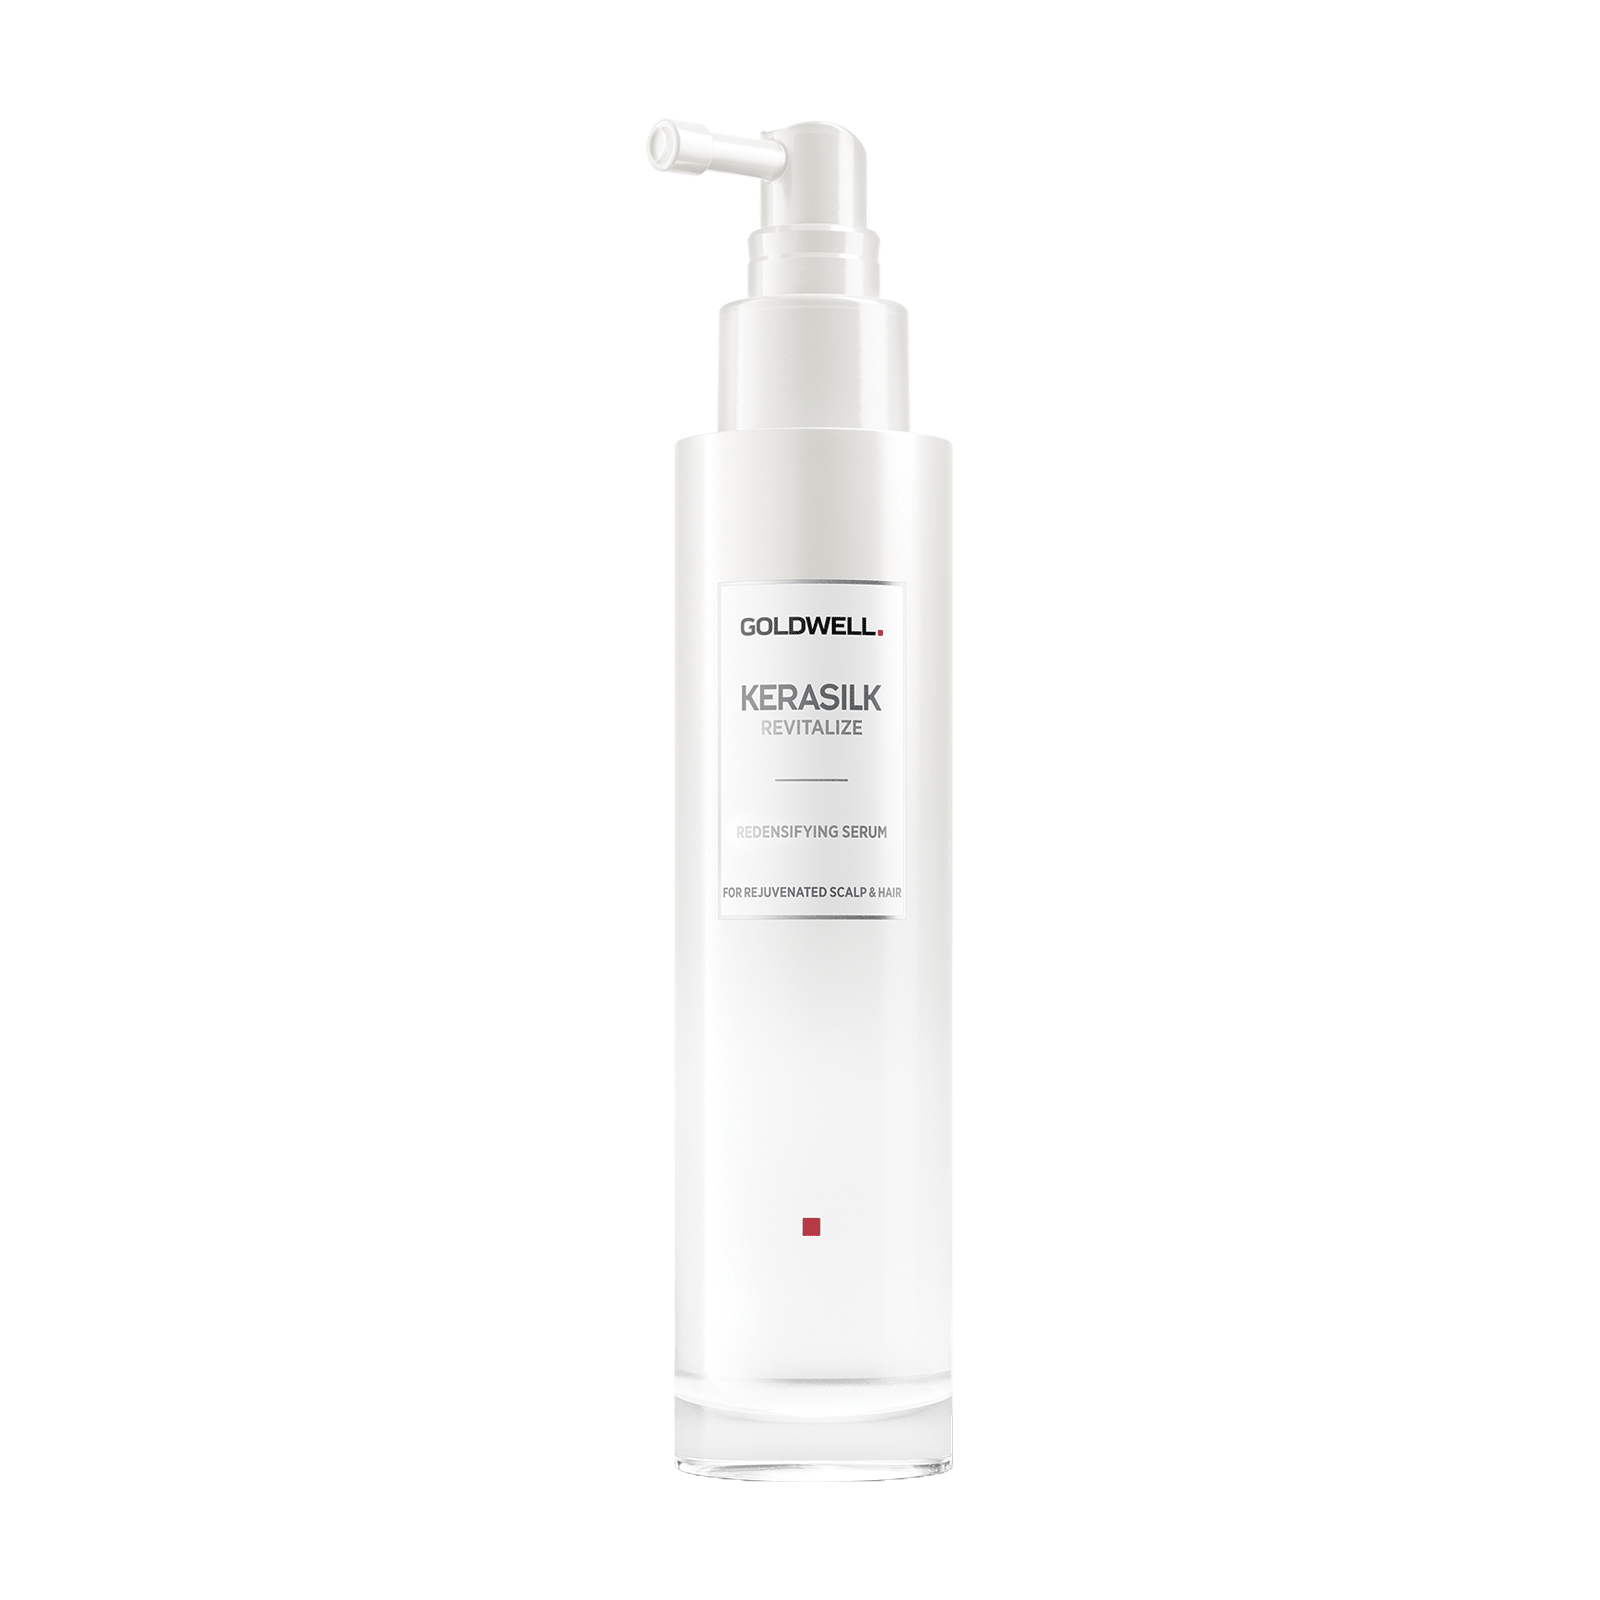 Kerasilk Revitalize Redensifying Serum